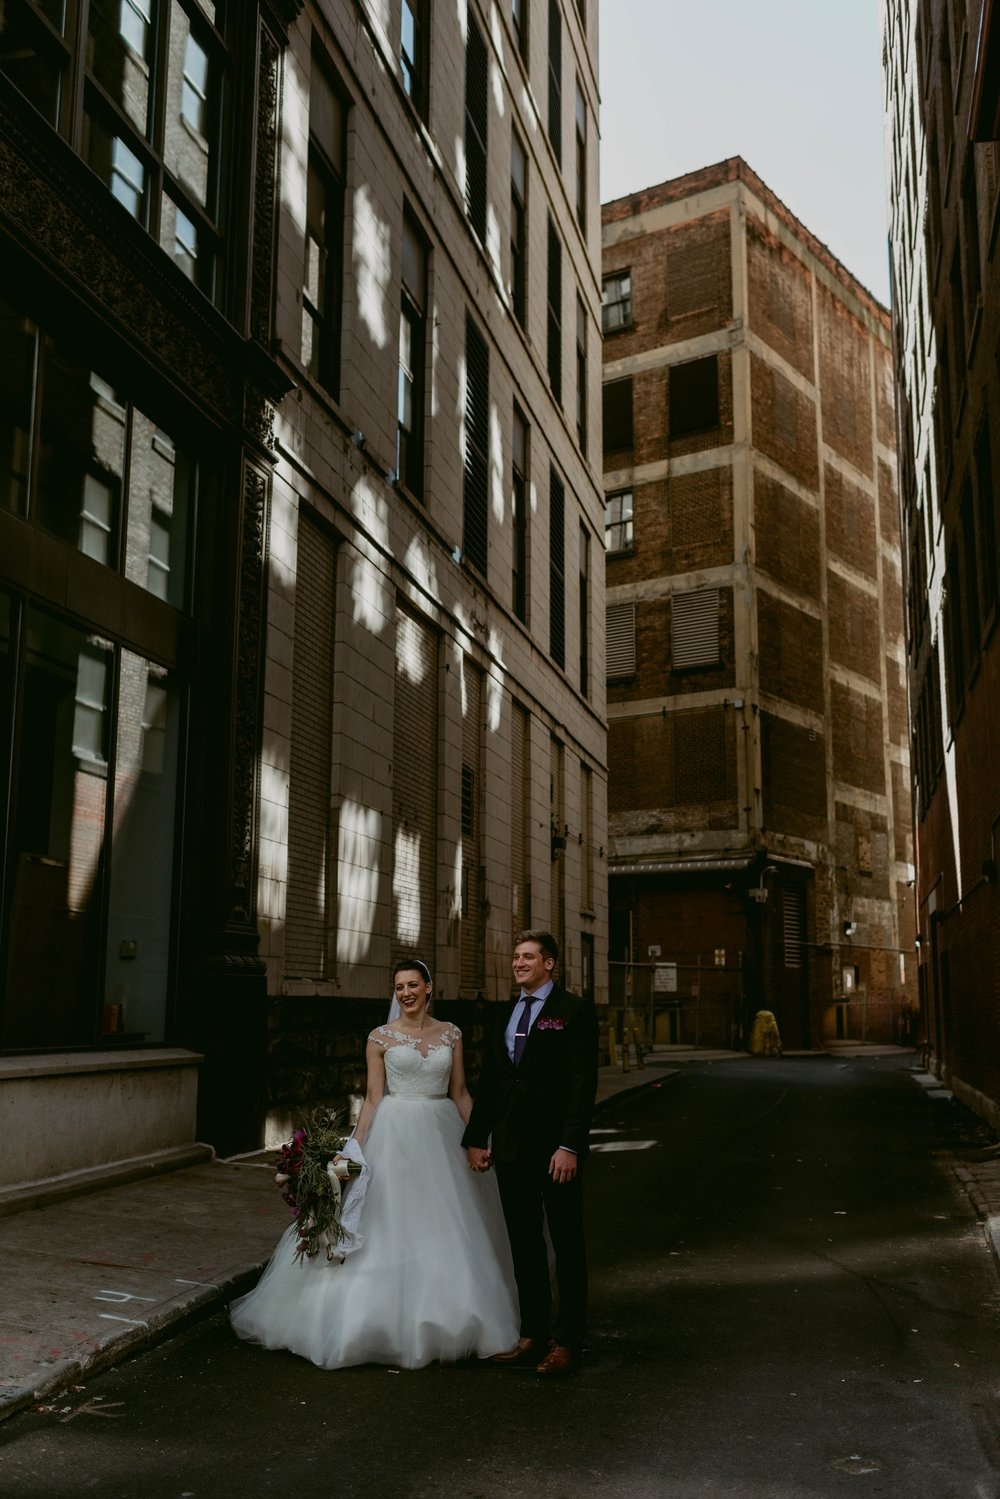 Romantic-Industrial-Warehouse-Wedding_Mallory+Justin-Photographers_0176.jpg